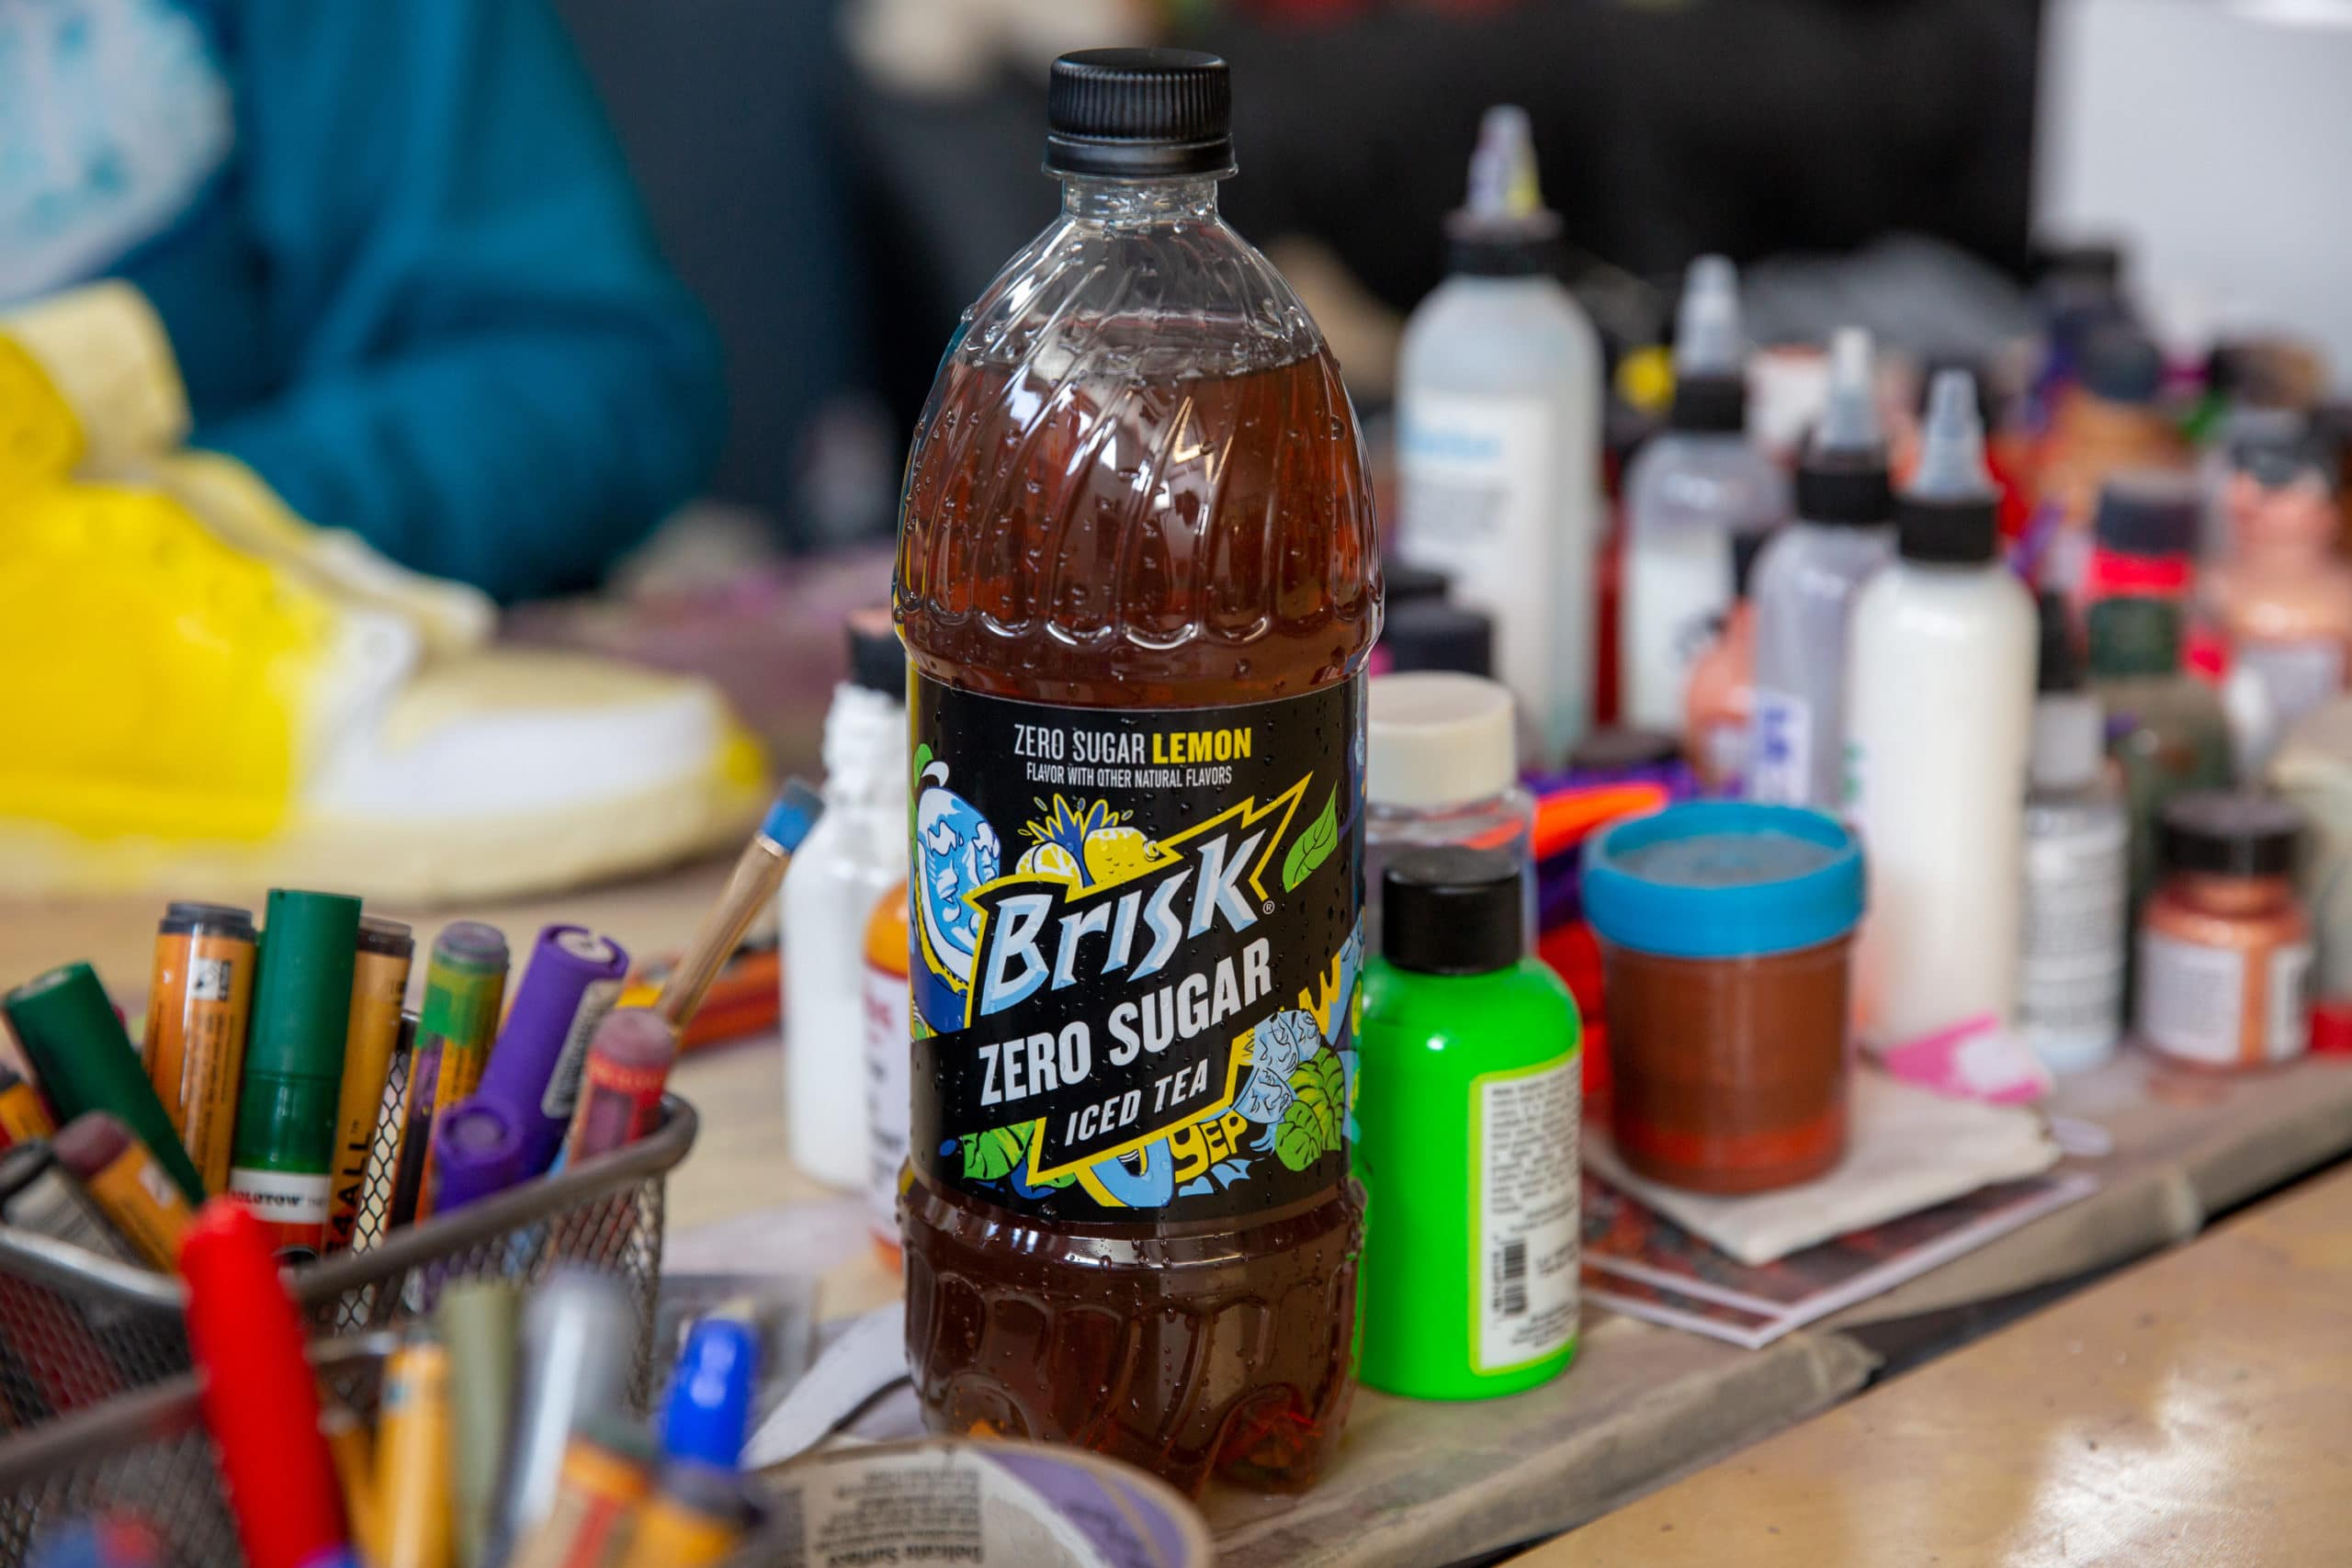 Brisk launches Zero Sugar Lemon Iced Tea with a sneaker collab with Mache 13